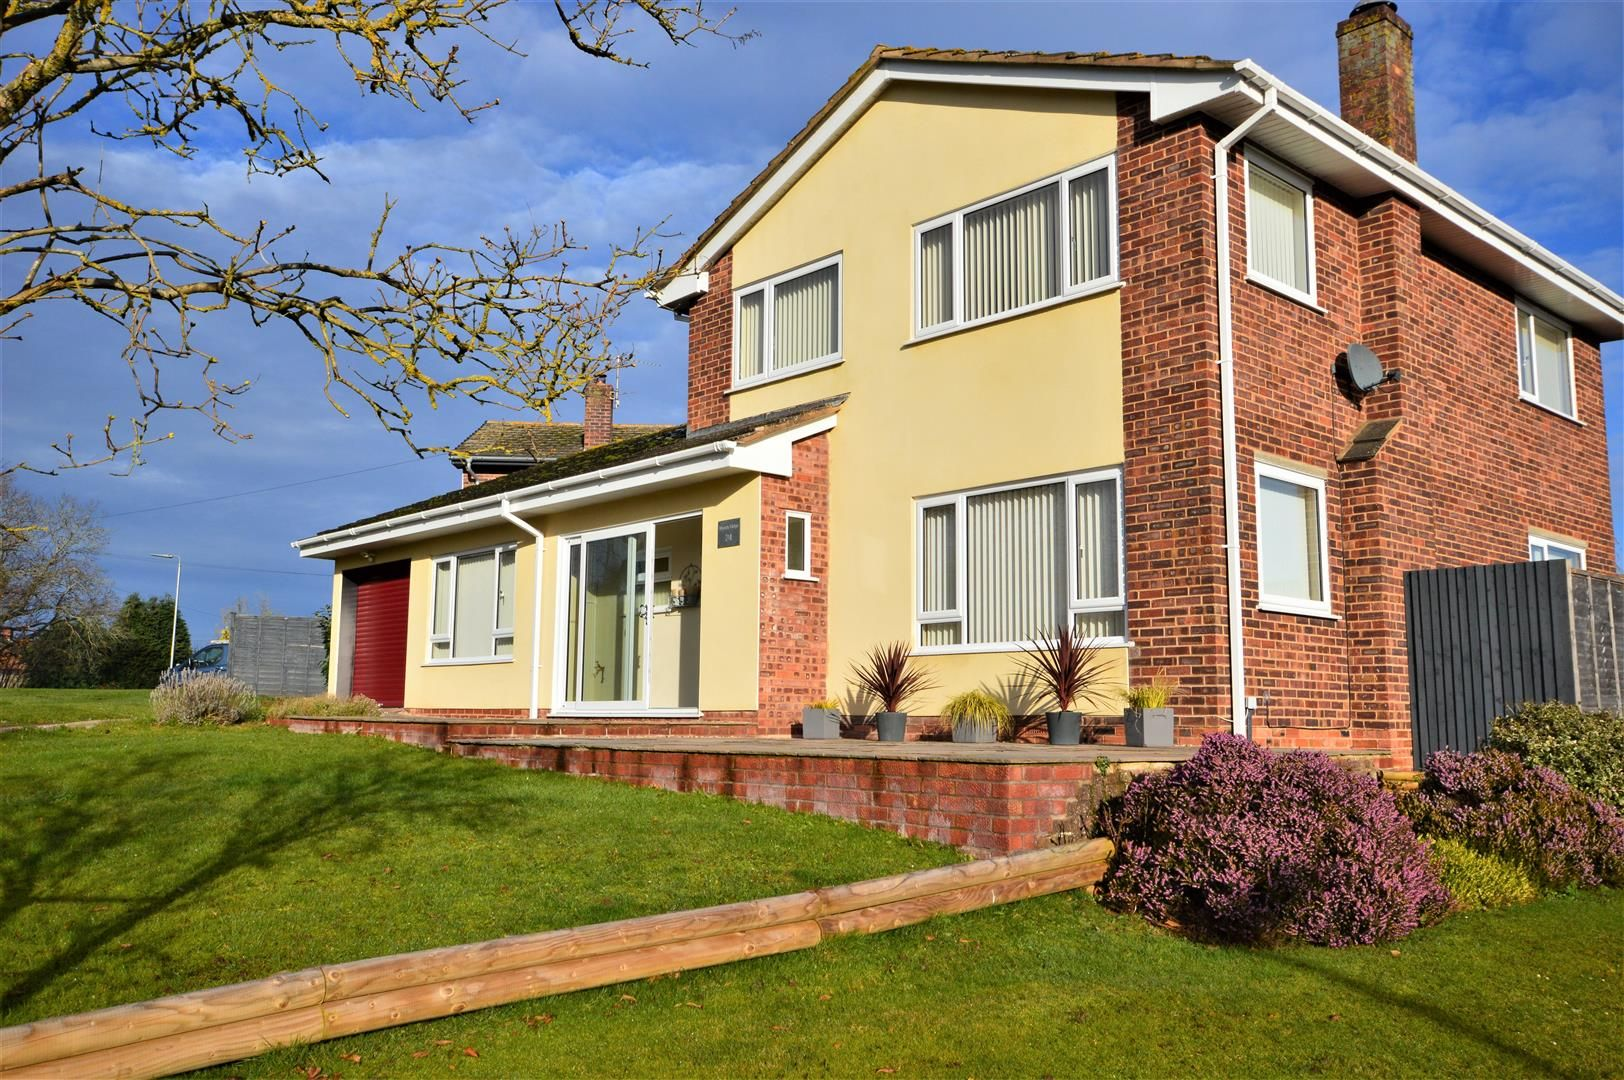 3 bed detached for sale in Kings Caple 1